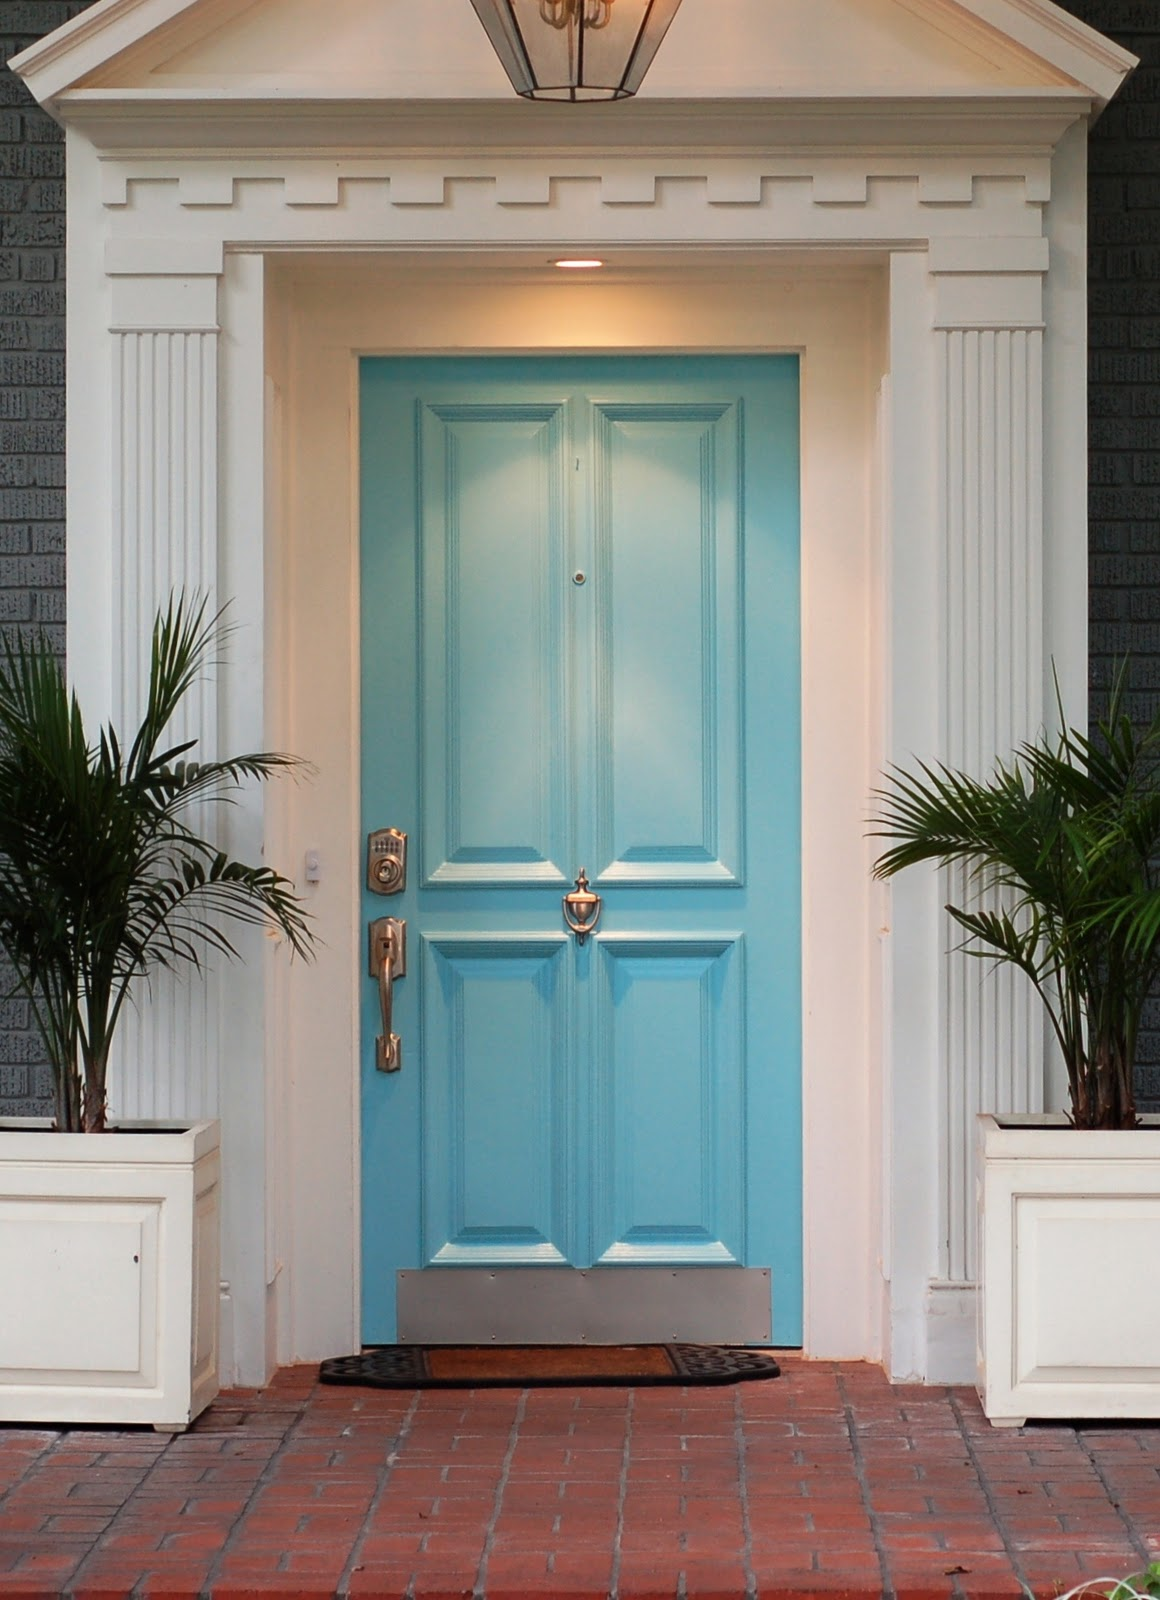 North dallas real estate front door colors to help sell for New style front doors